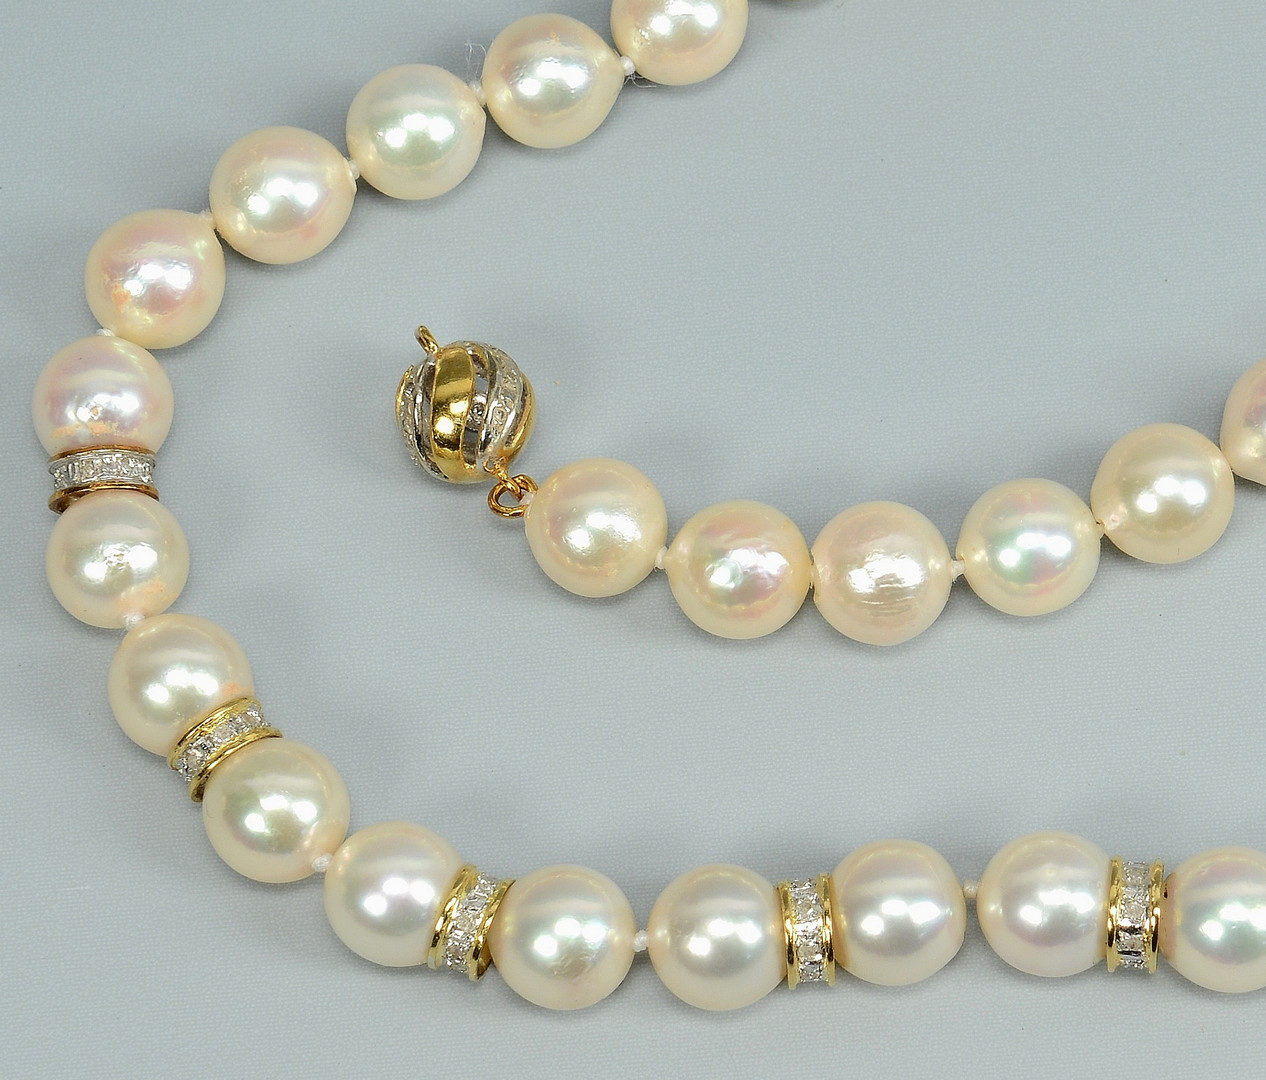 Lot 777: Group of 14k Beaded Jewelry